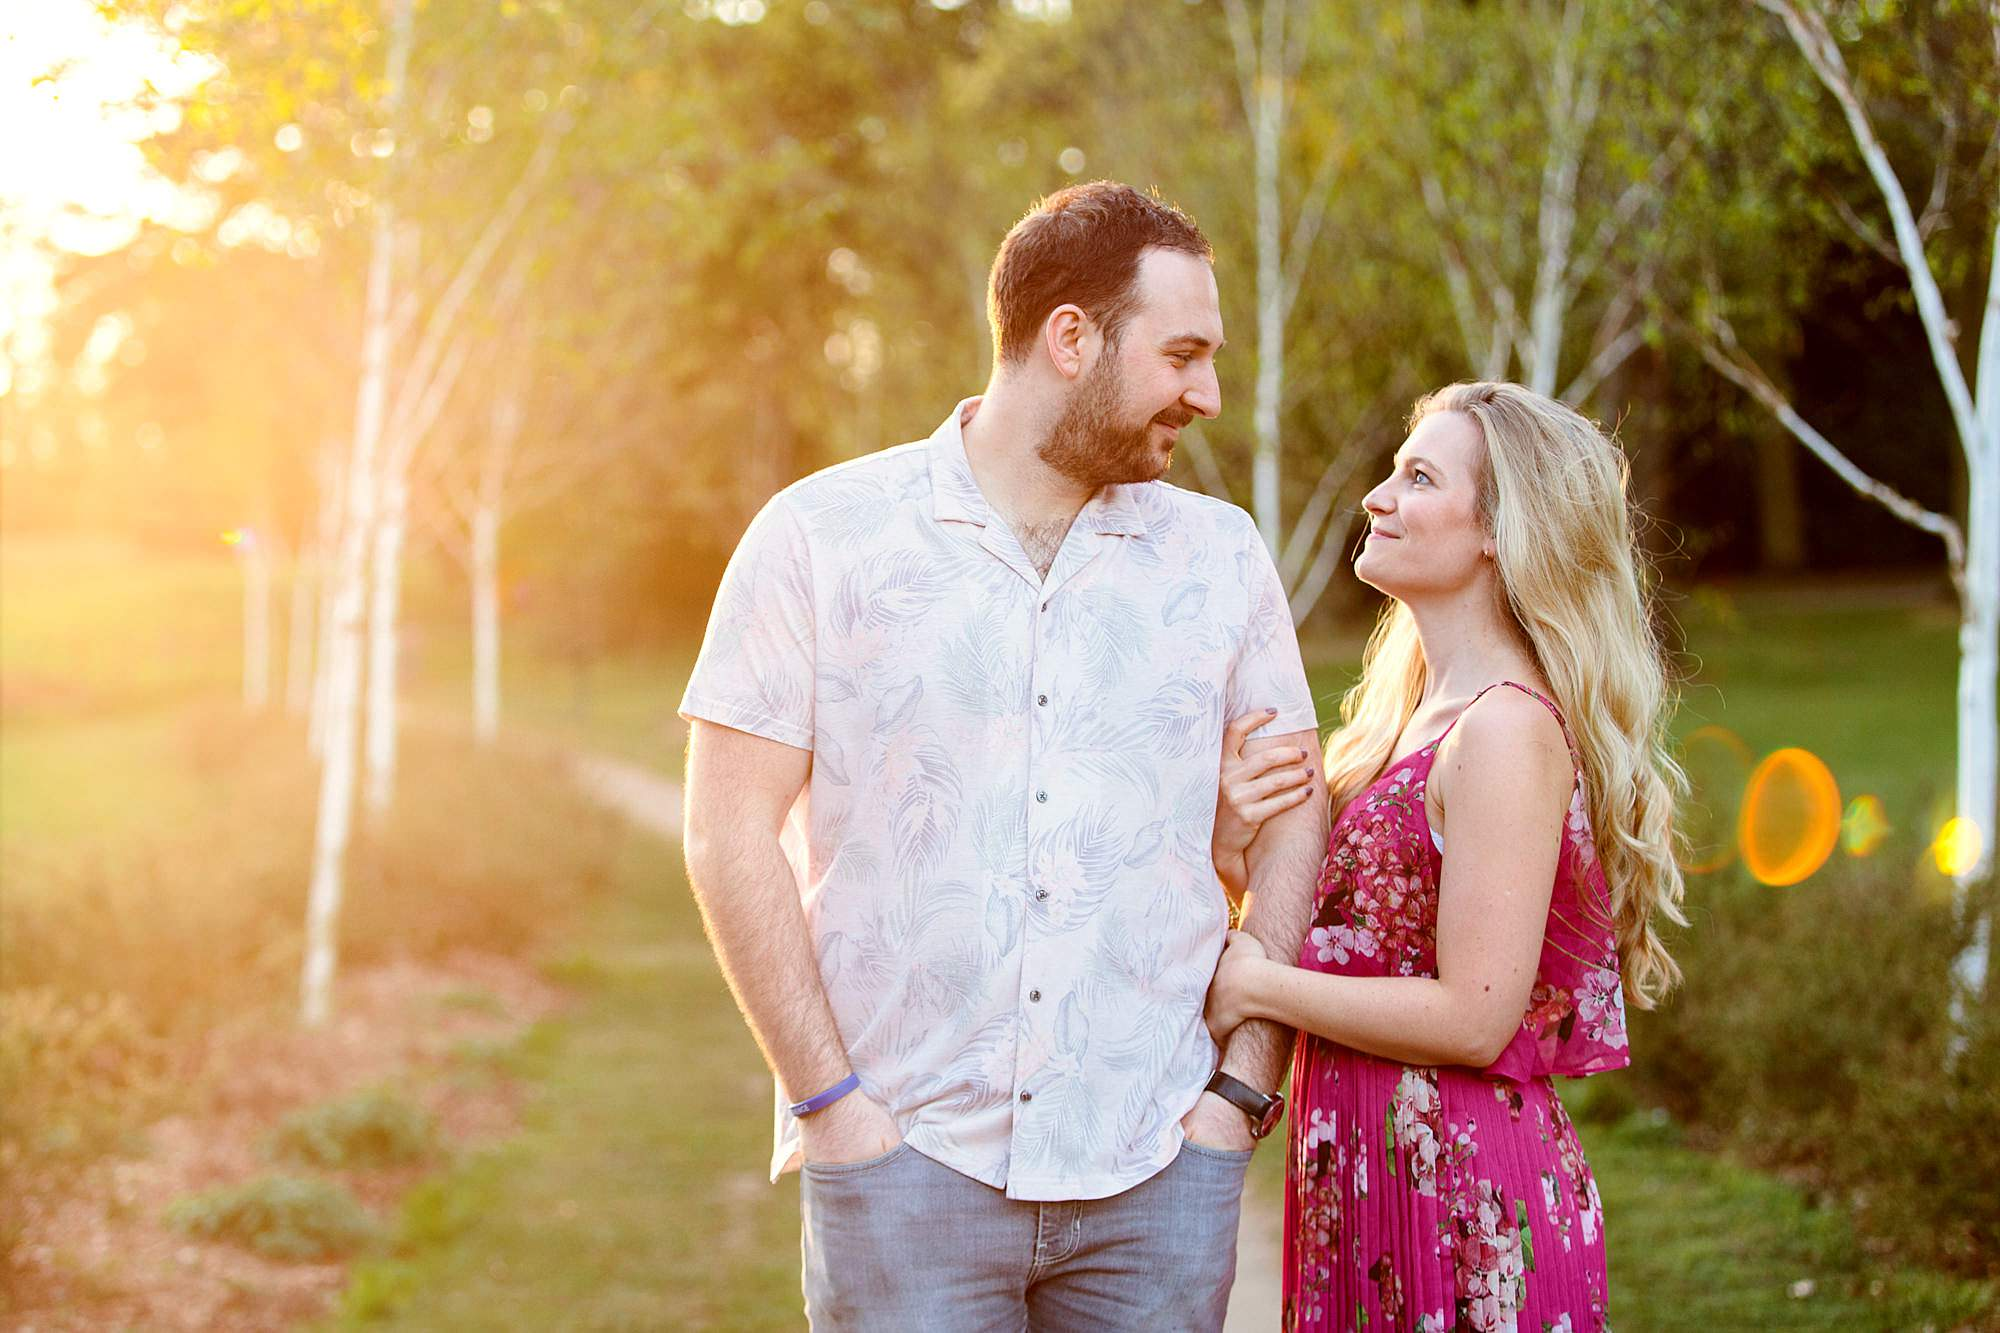 Summer evening engagement shoot couple chat together in sunlit park